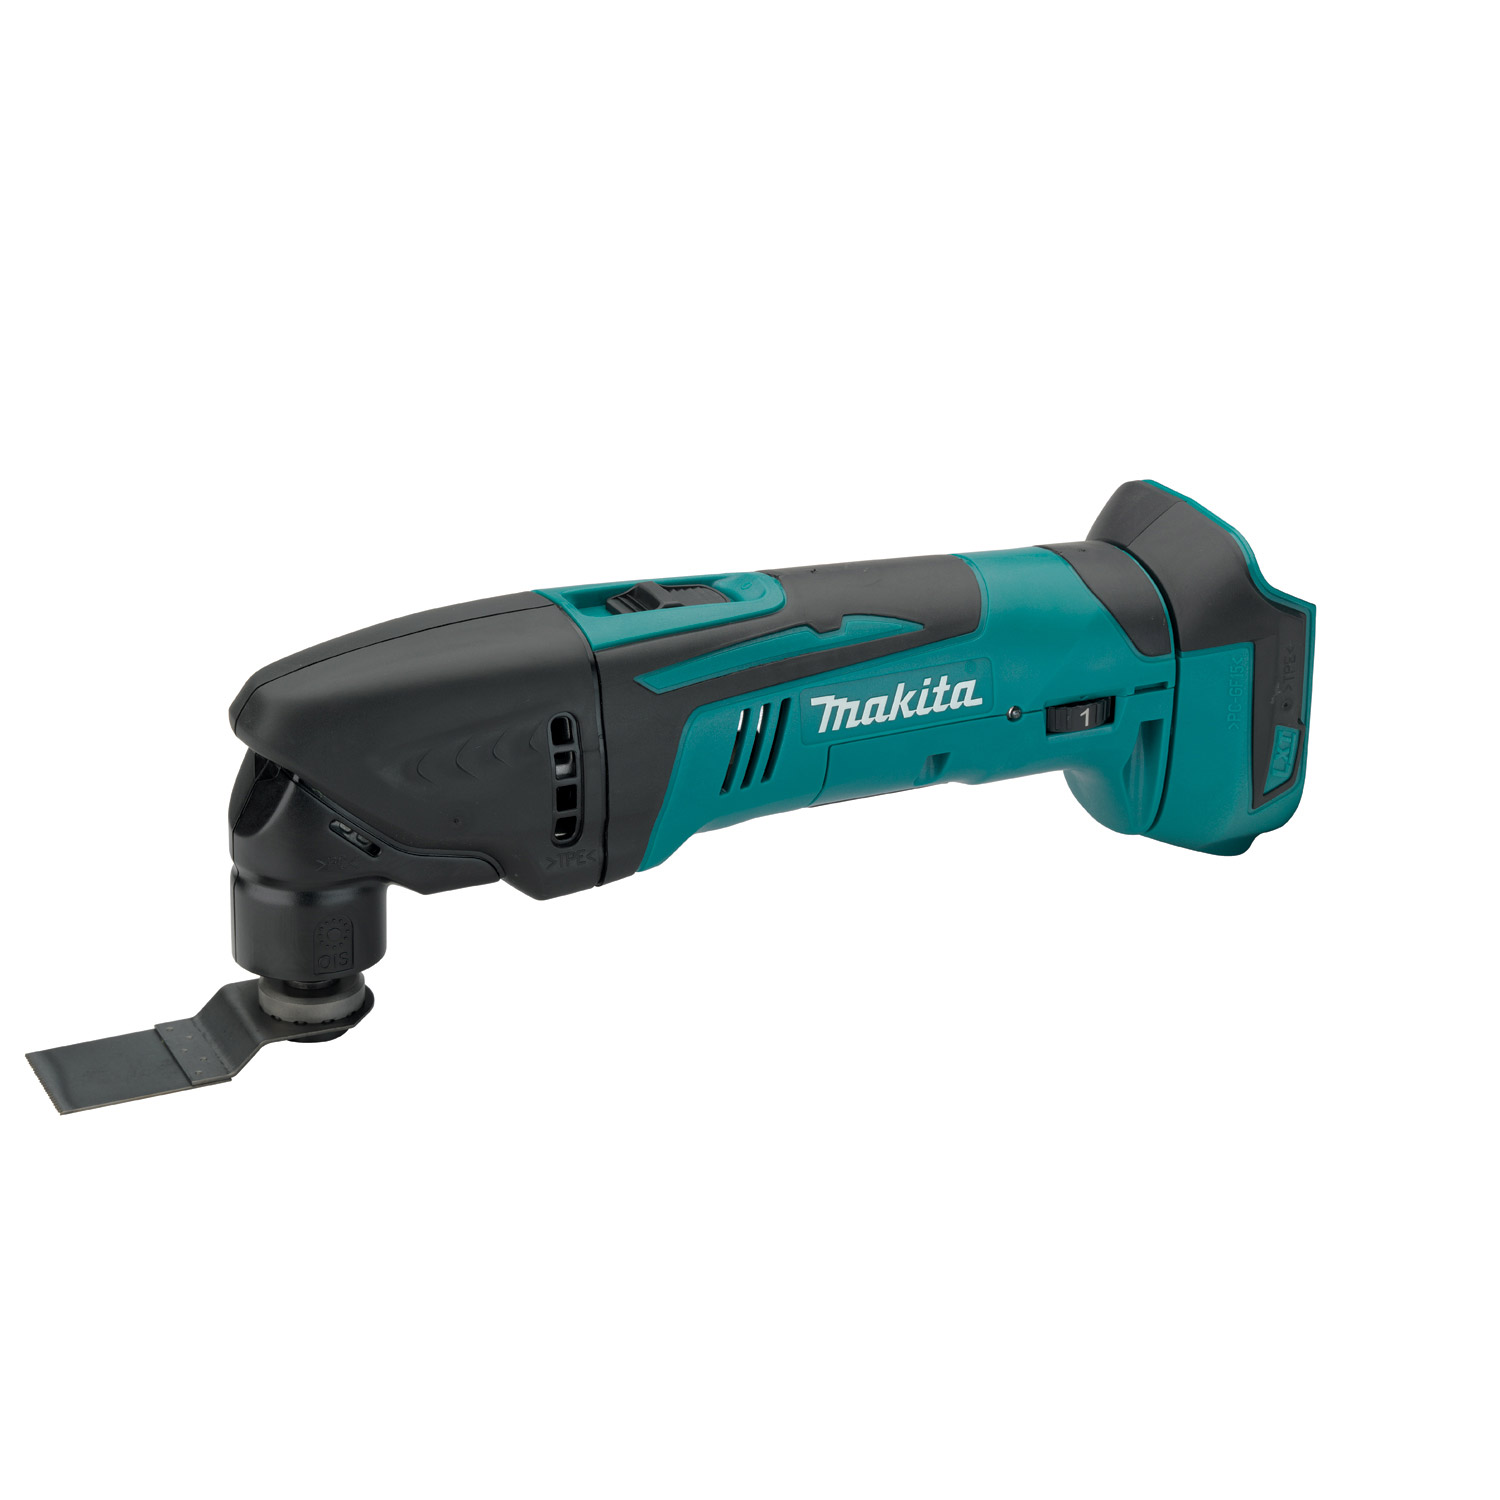 makita lxmt02z 18 volt lxt lithium ion cordless multi tool bare tool ebay. Black Bedroom Furniture Sets. Home Design Ideas